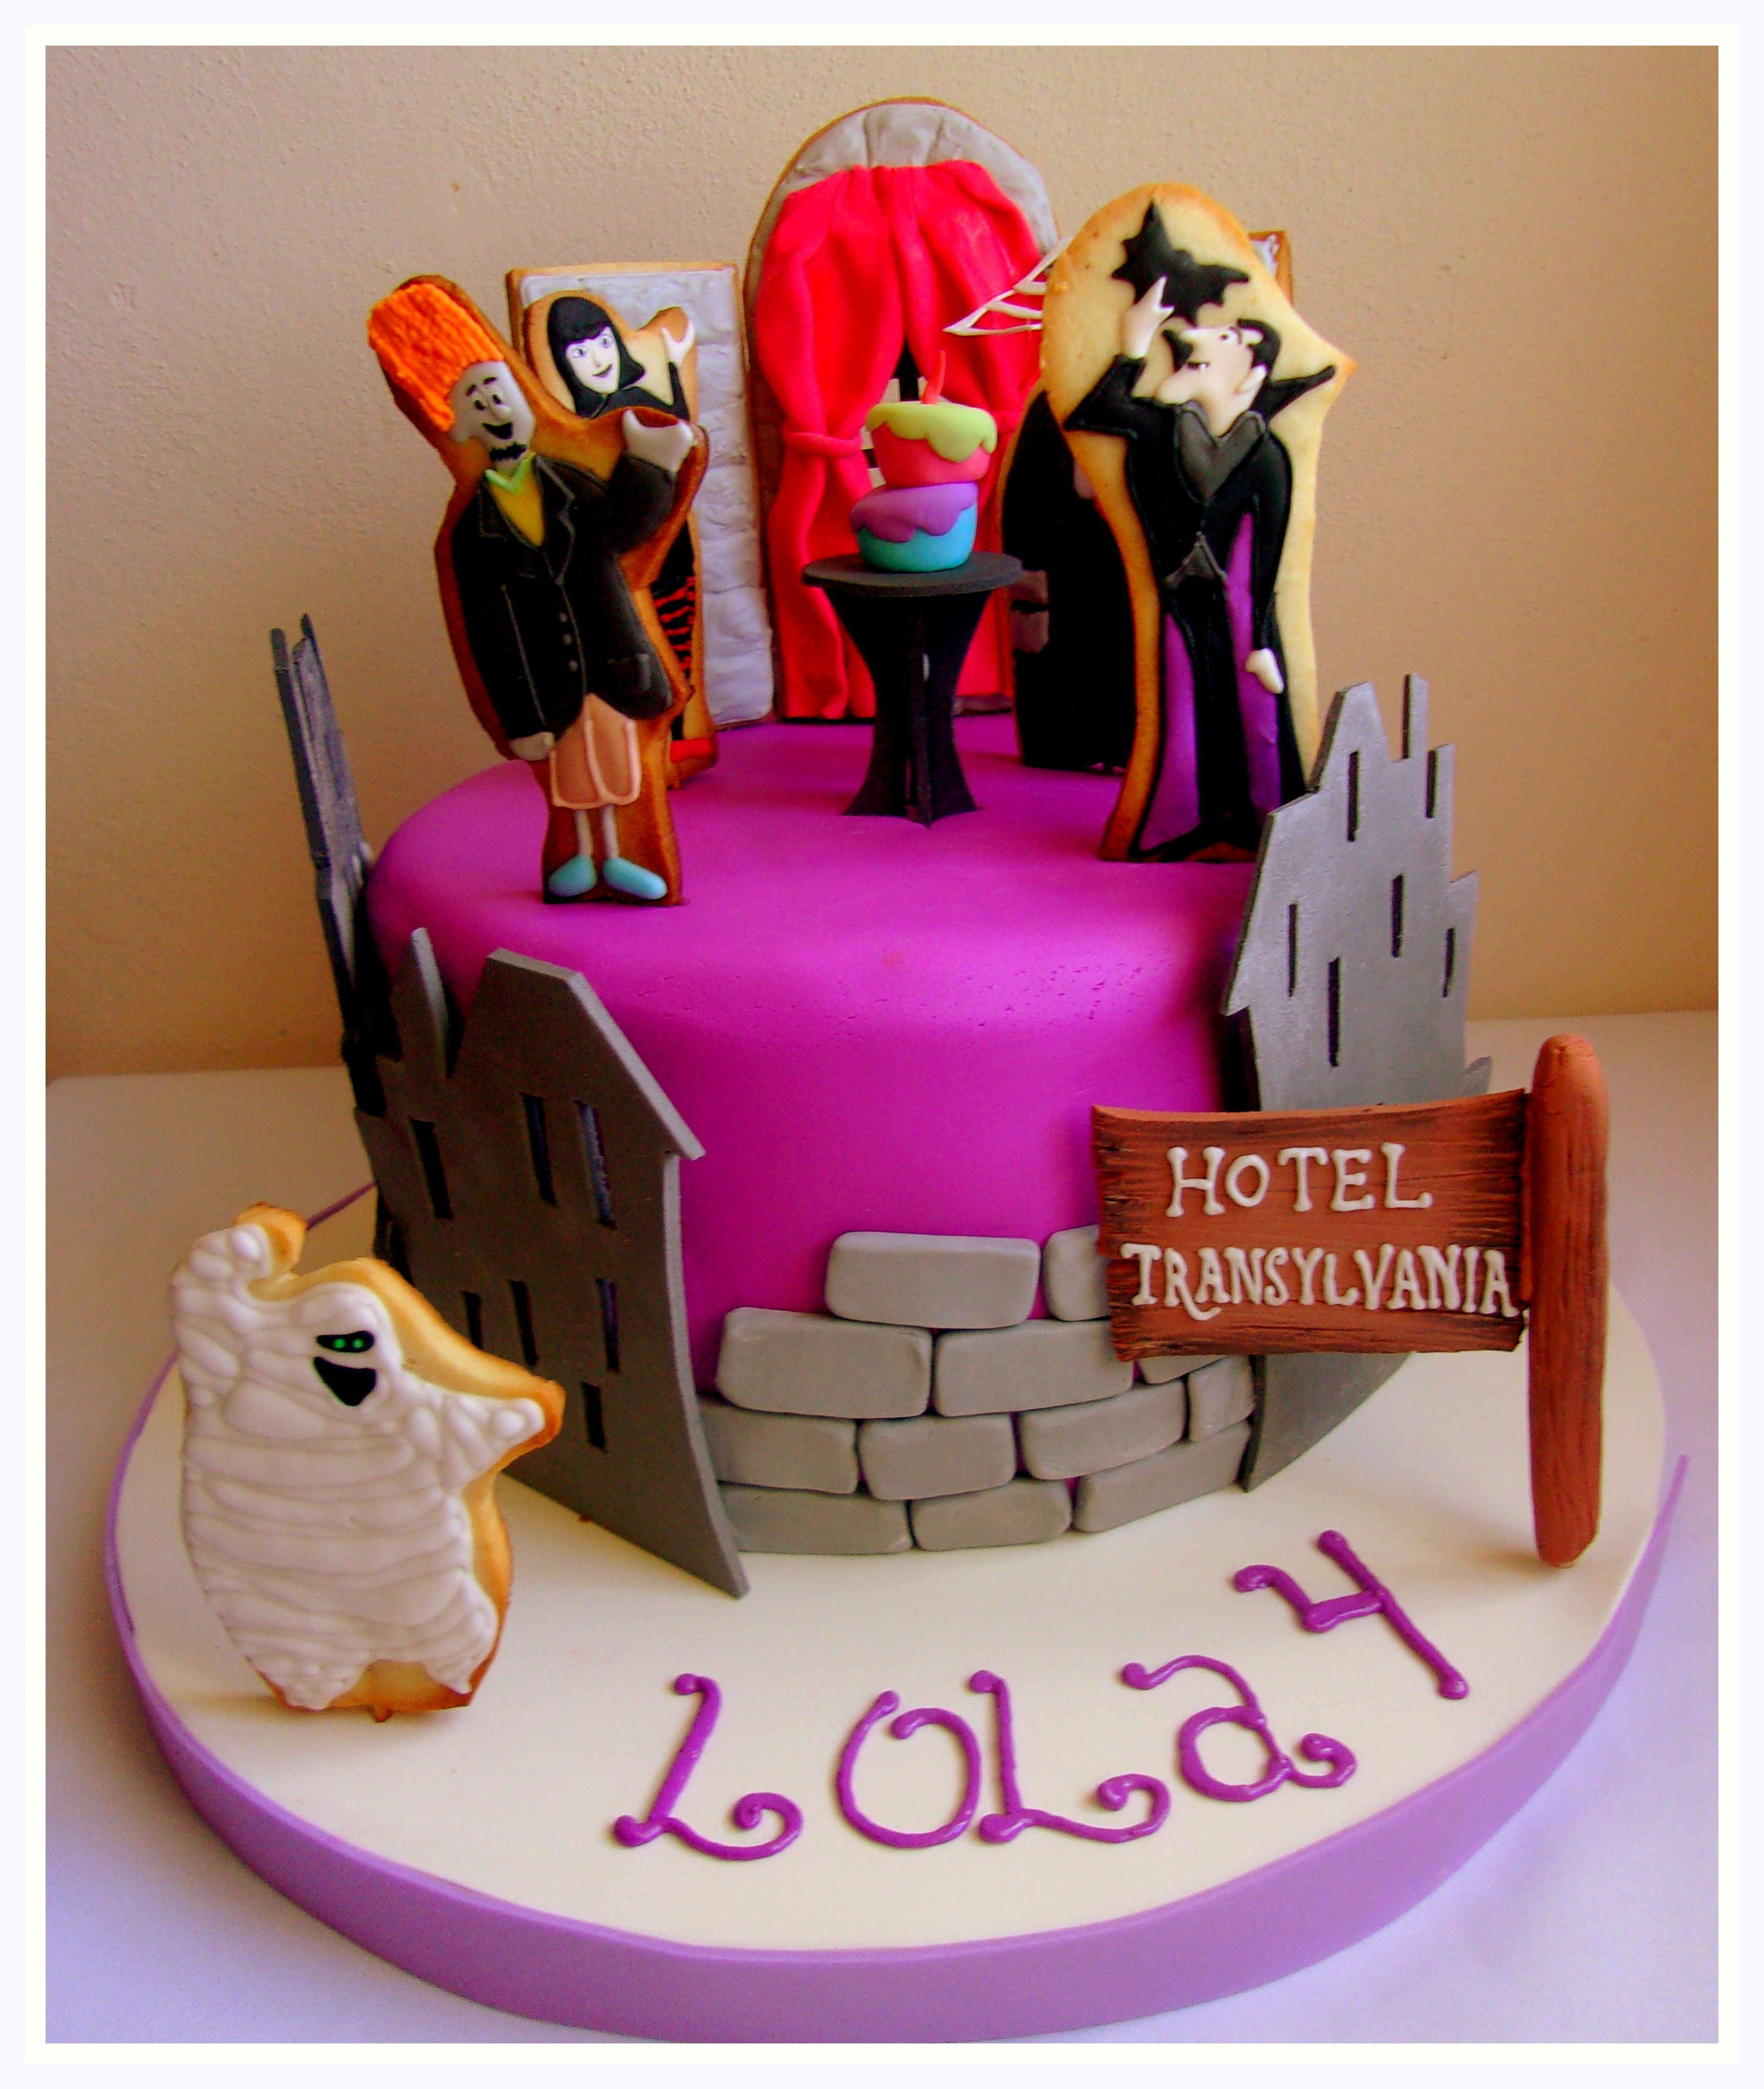 Hotel Transylvania Cake Birthday Ideas Twins